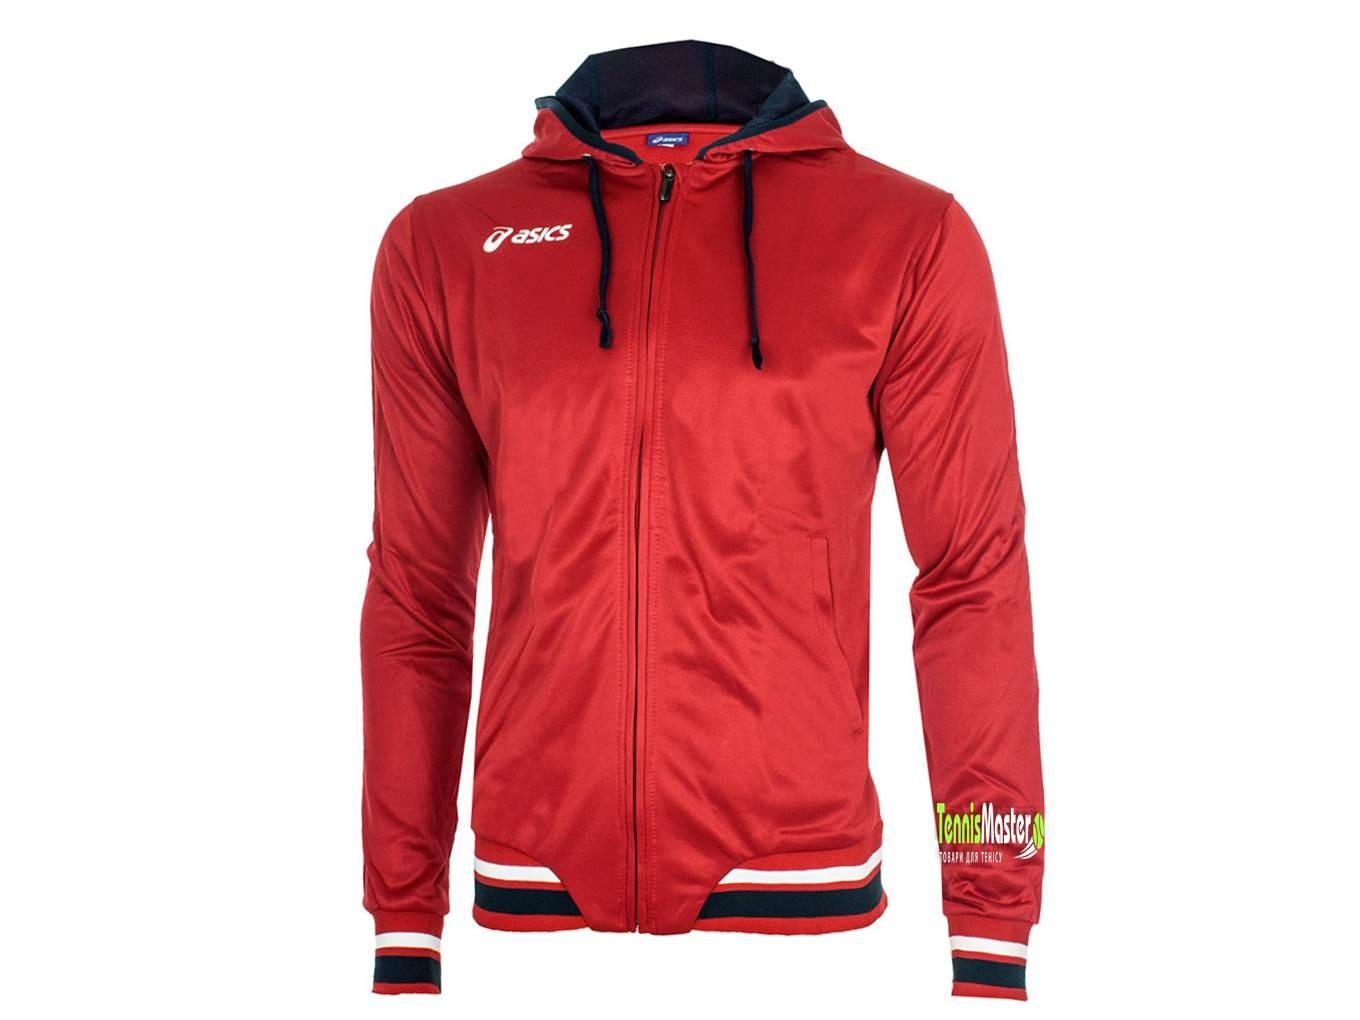 Кофта детская Asics Junior Tir Jacket red/navy